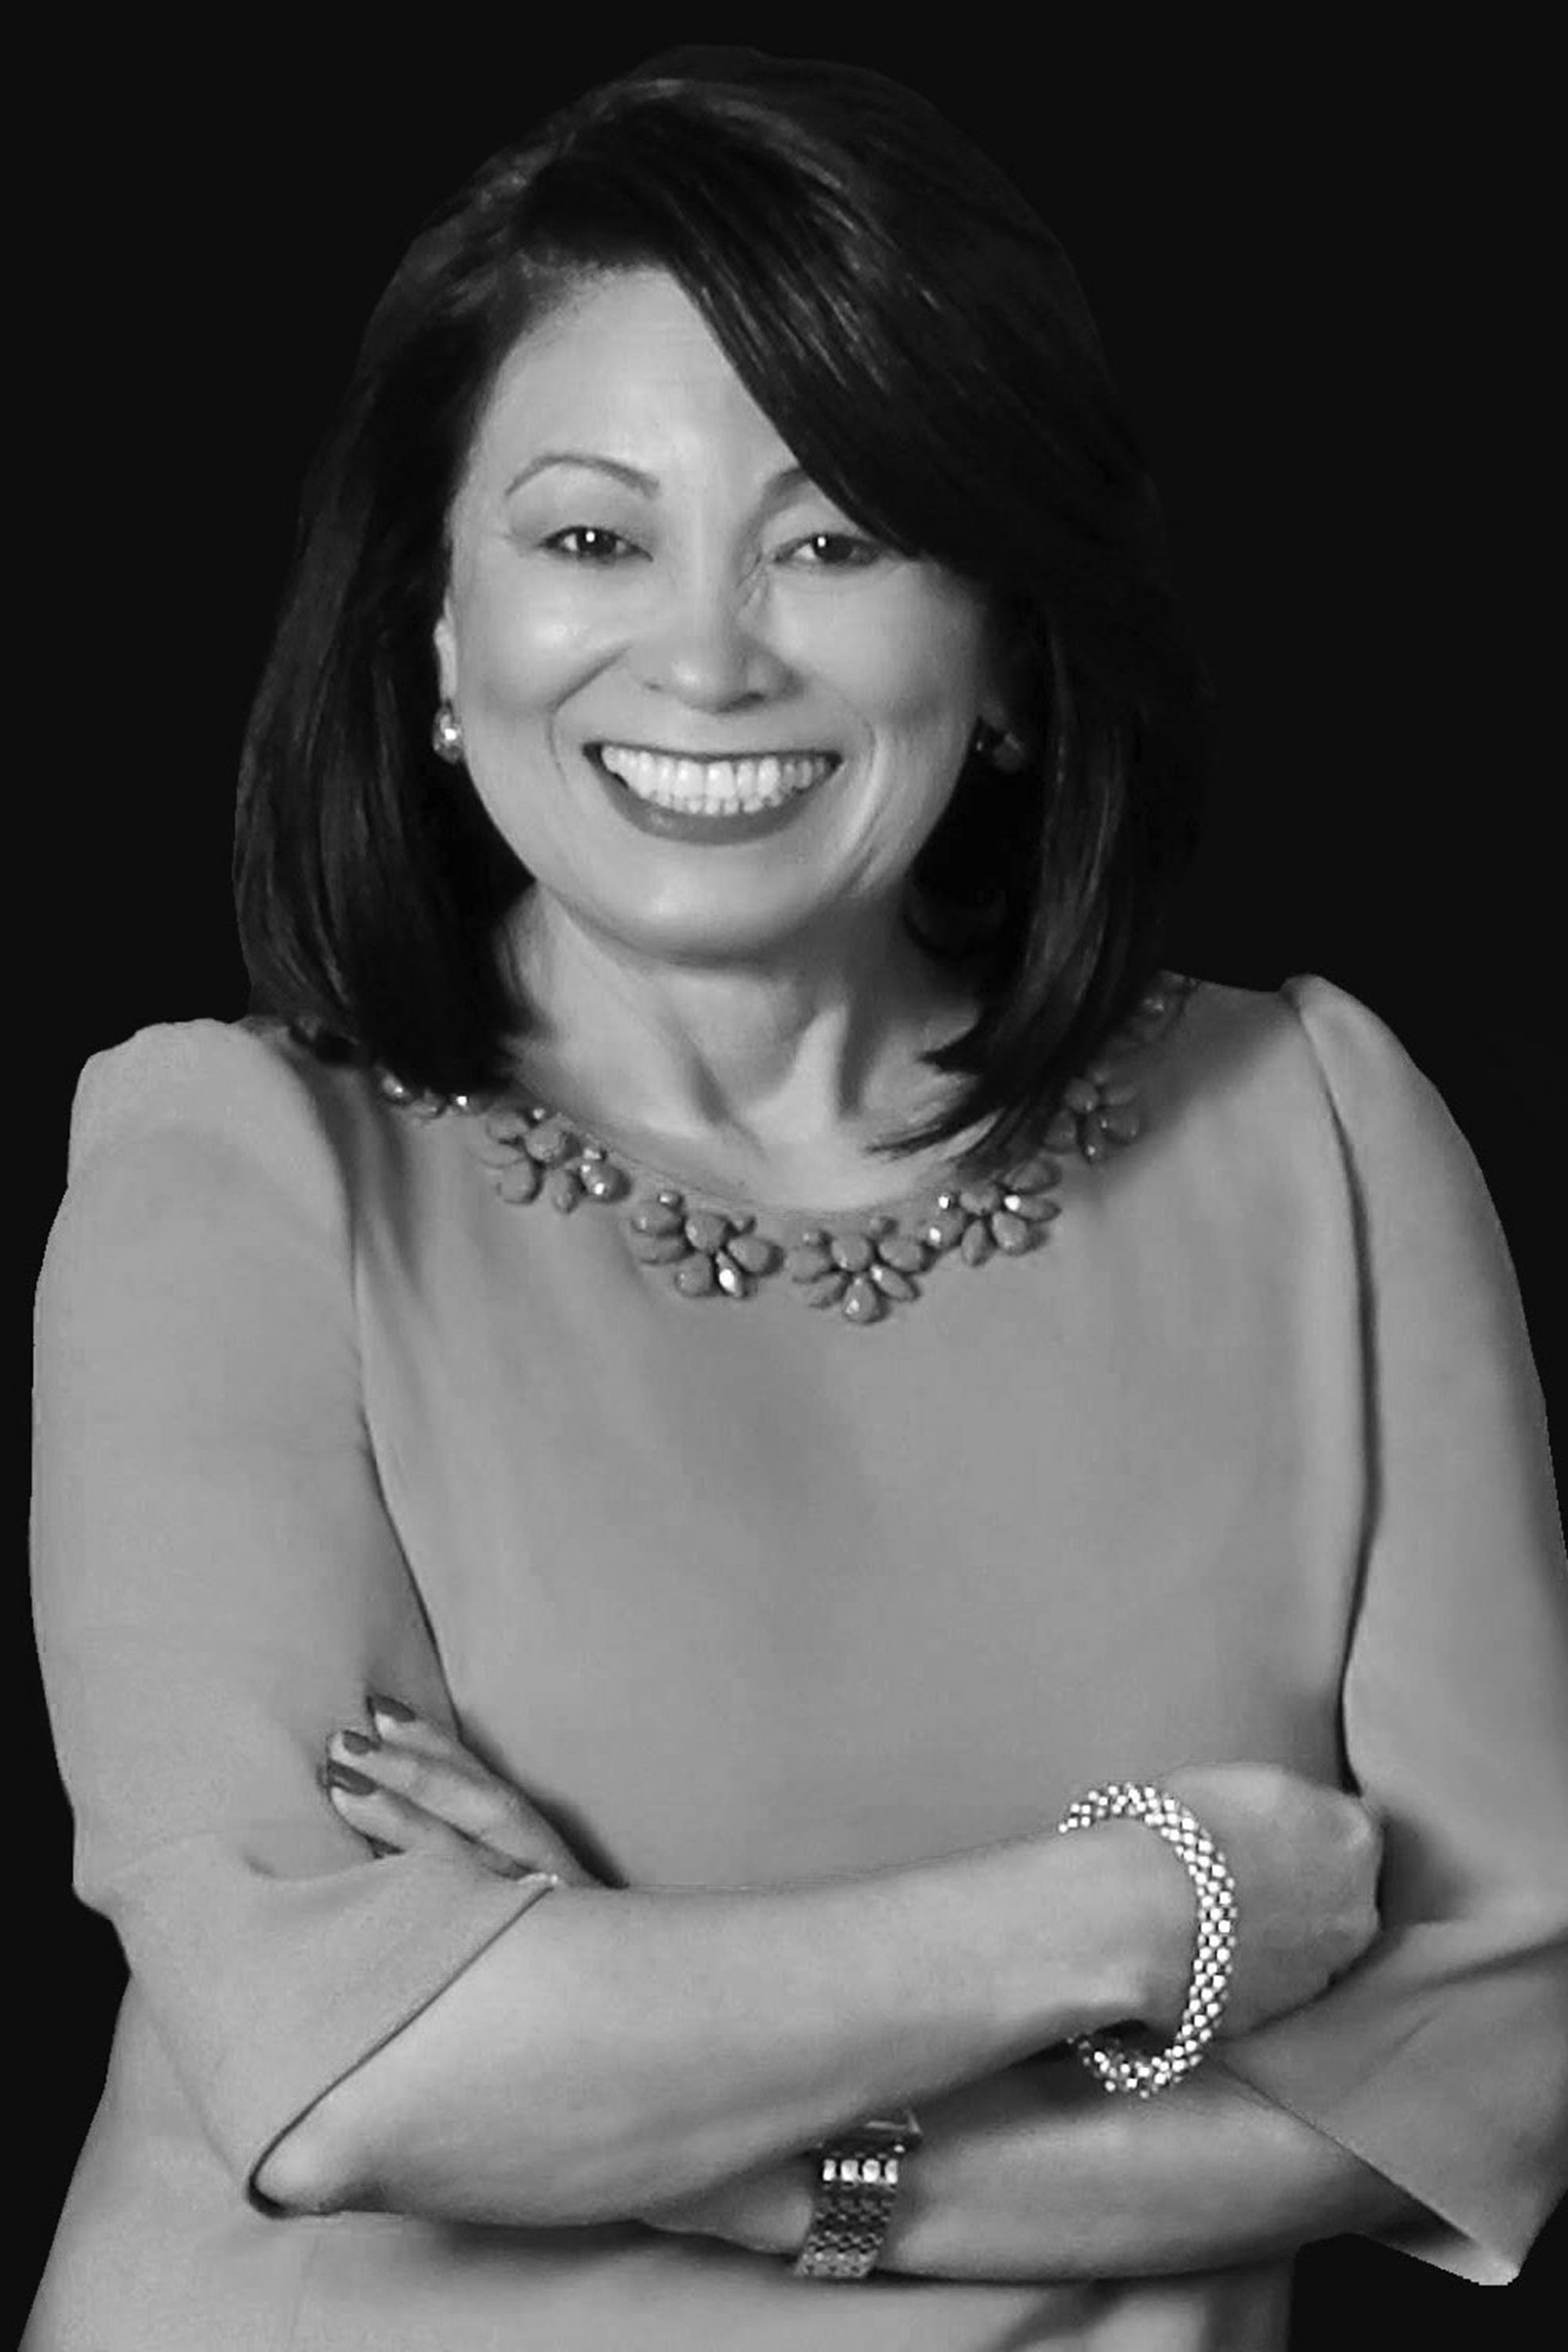 "<p><strong data-redactor-tag=""strong"" data-verified=""redactor"">Dr. Gloria Bonilla-Santiago, 63, Founder of  <a href=""http://www.leapacademycharter.org"" target=""_blank"" data-tracking-id=""recirc-text-link"">The LEAP (Leadership, Education, and Partnership) Academy University Charter School</a> </strong></p><p> ""At this age, I celebrate a 25-year legacy of sending kids to college with a 100% graduation rate for all my classes. This is my life's work, and this is the best age of all because I've been able to live through the transformation of this project and now I get to look back and see the success of the students in action.""</p><p><span class=""redactor-invisible-space"" data-verified=""redactor"" data-redactor-tag=""span"" data-redactor-class=""redactor-invisible-space""></span><br></p>"